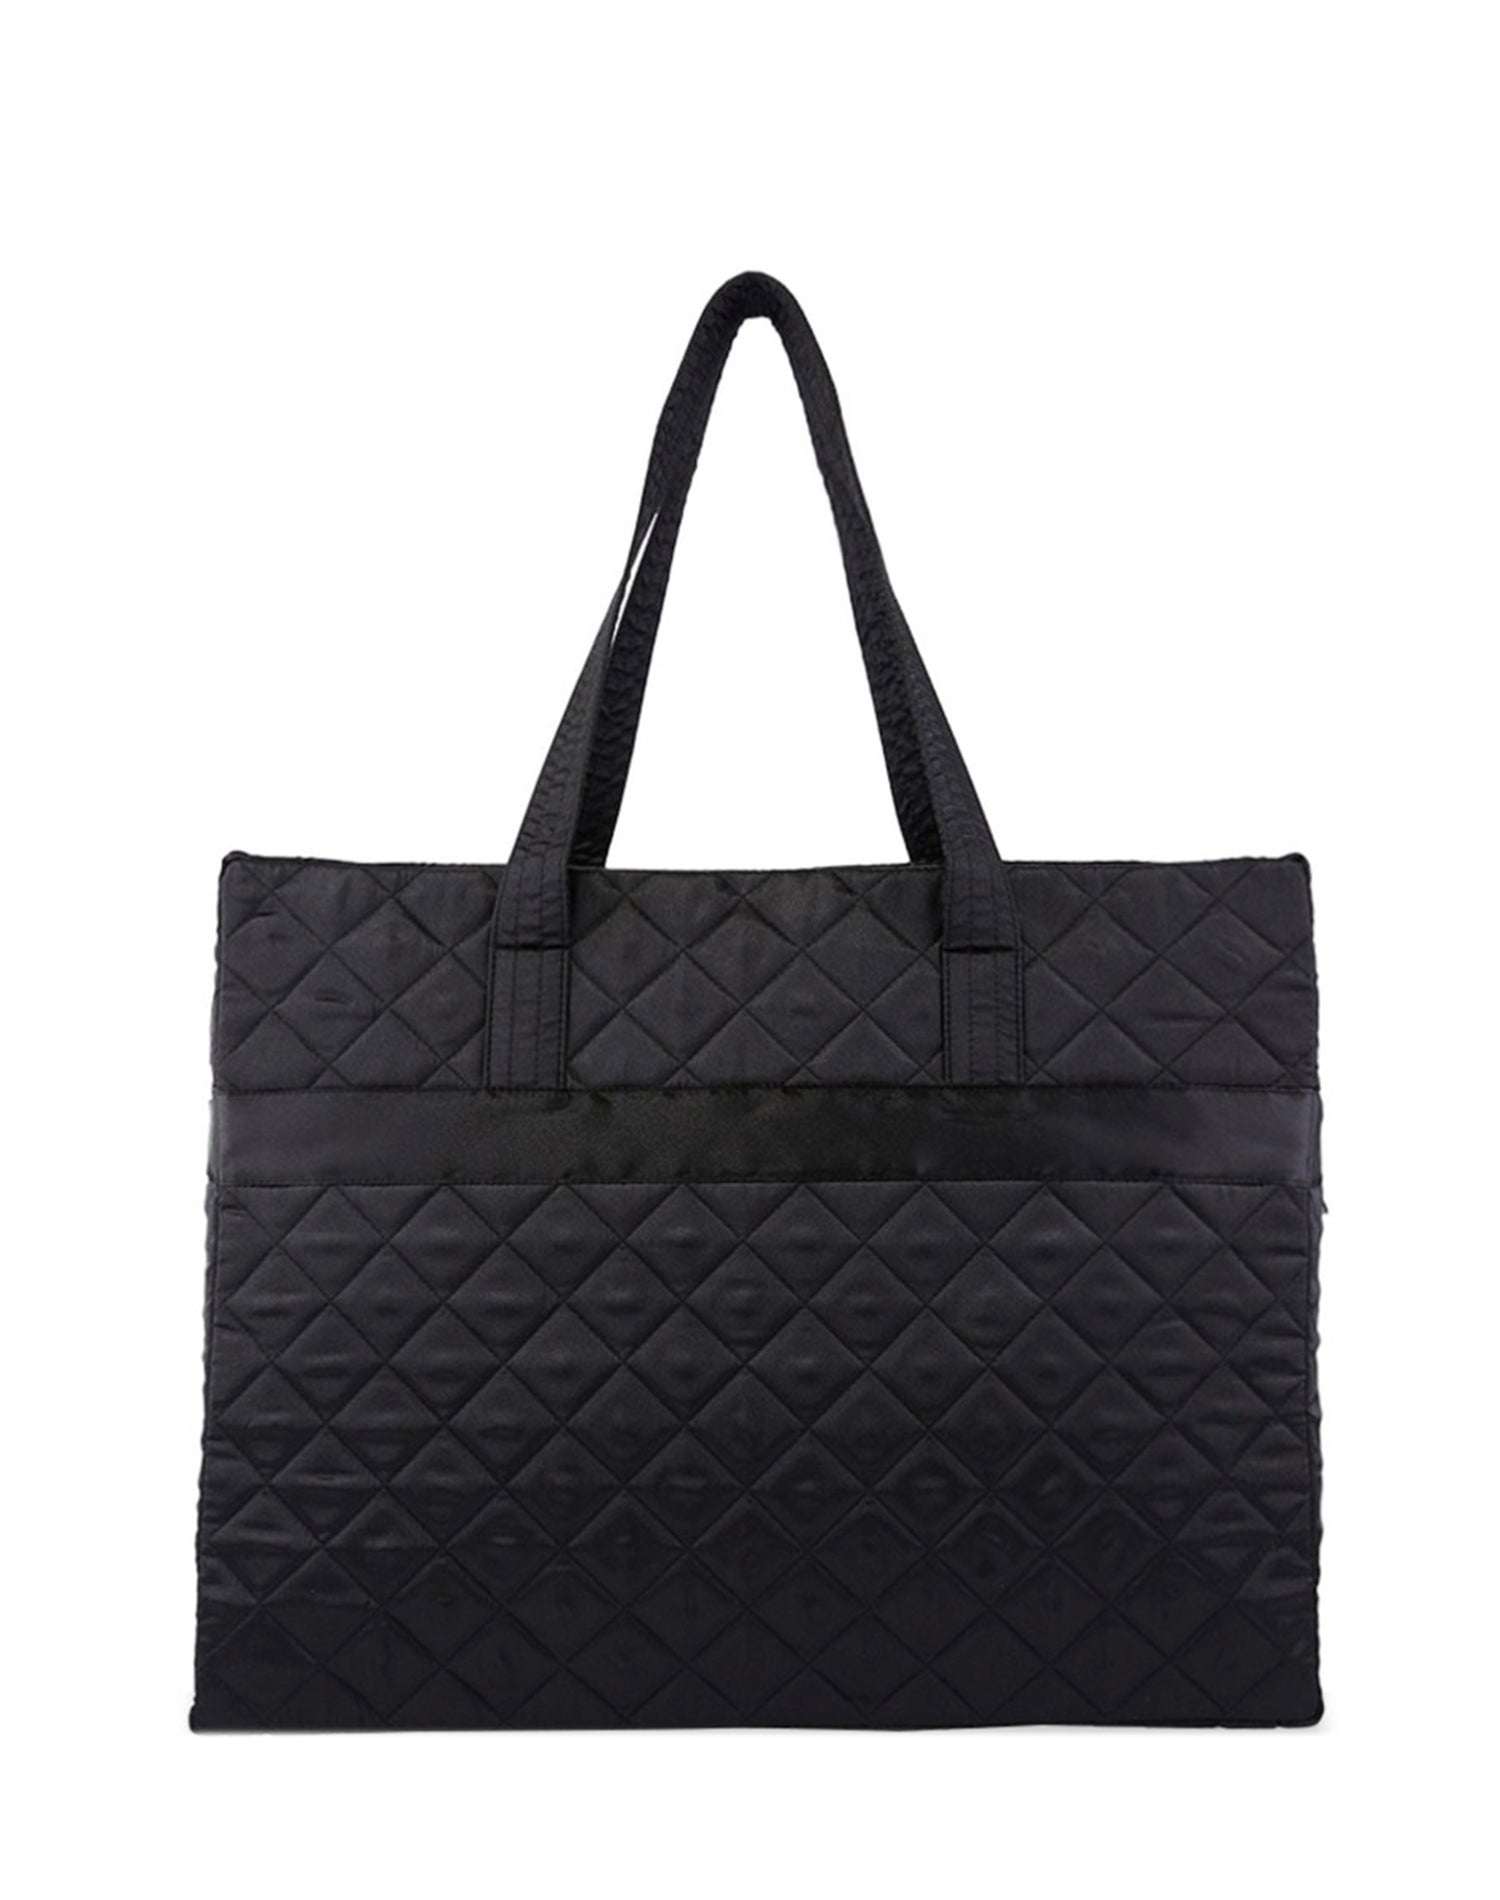 Black Satin Quilted Tote Bag.黑色缎布側背袋